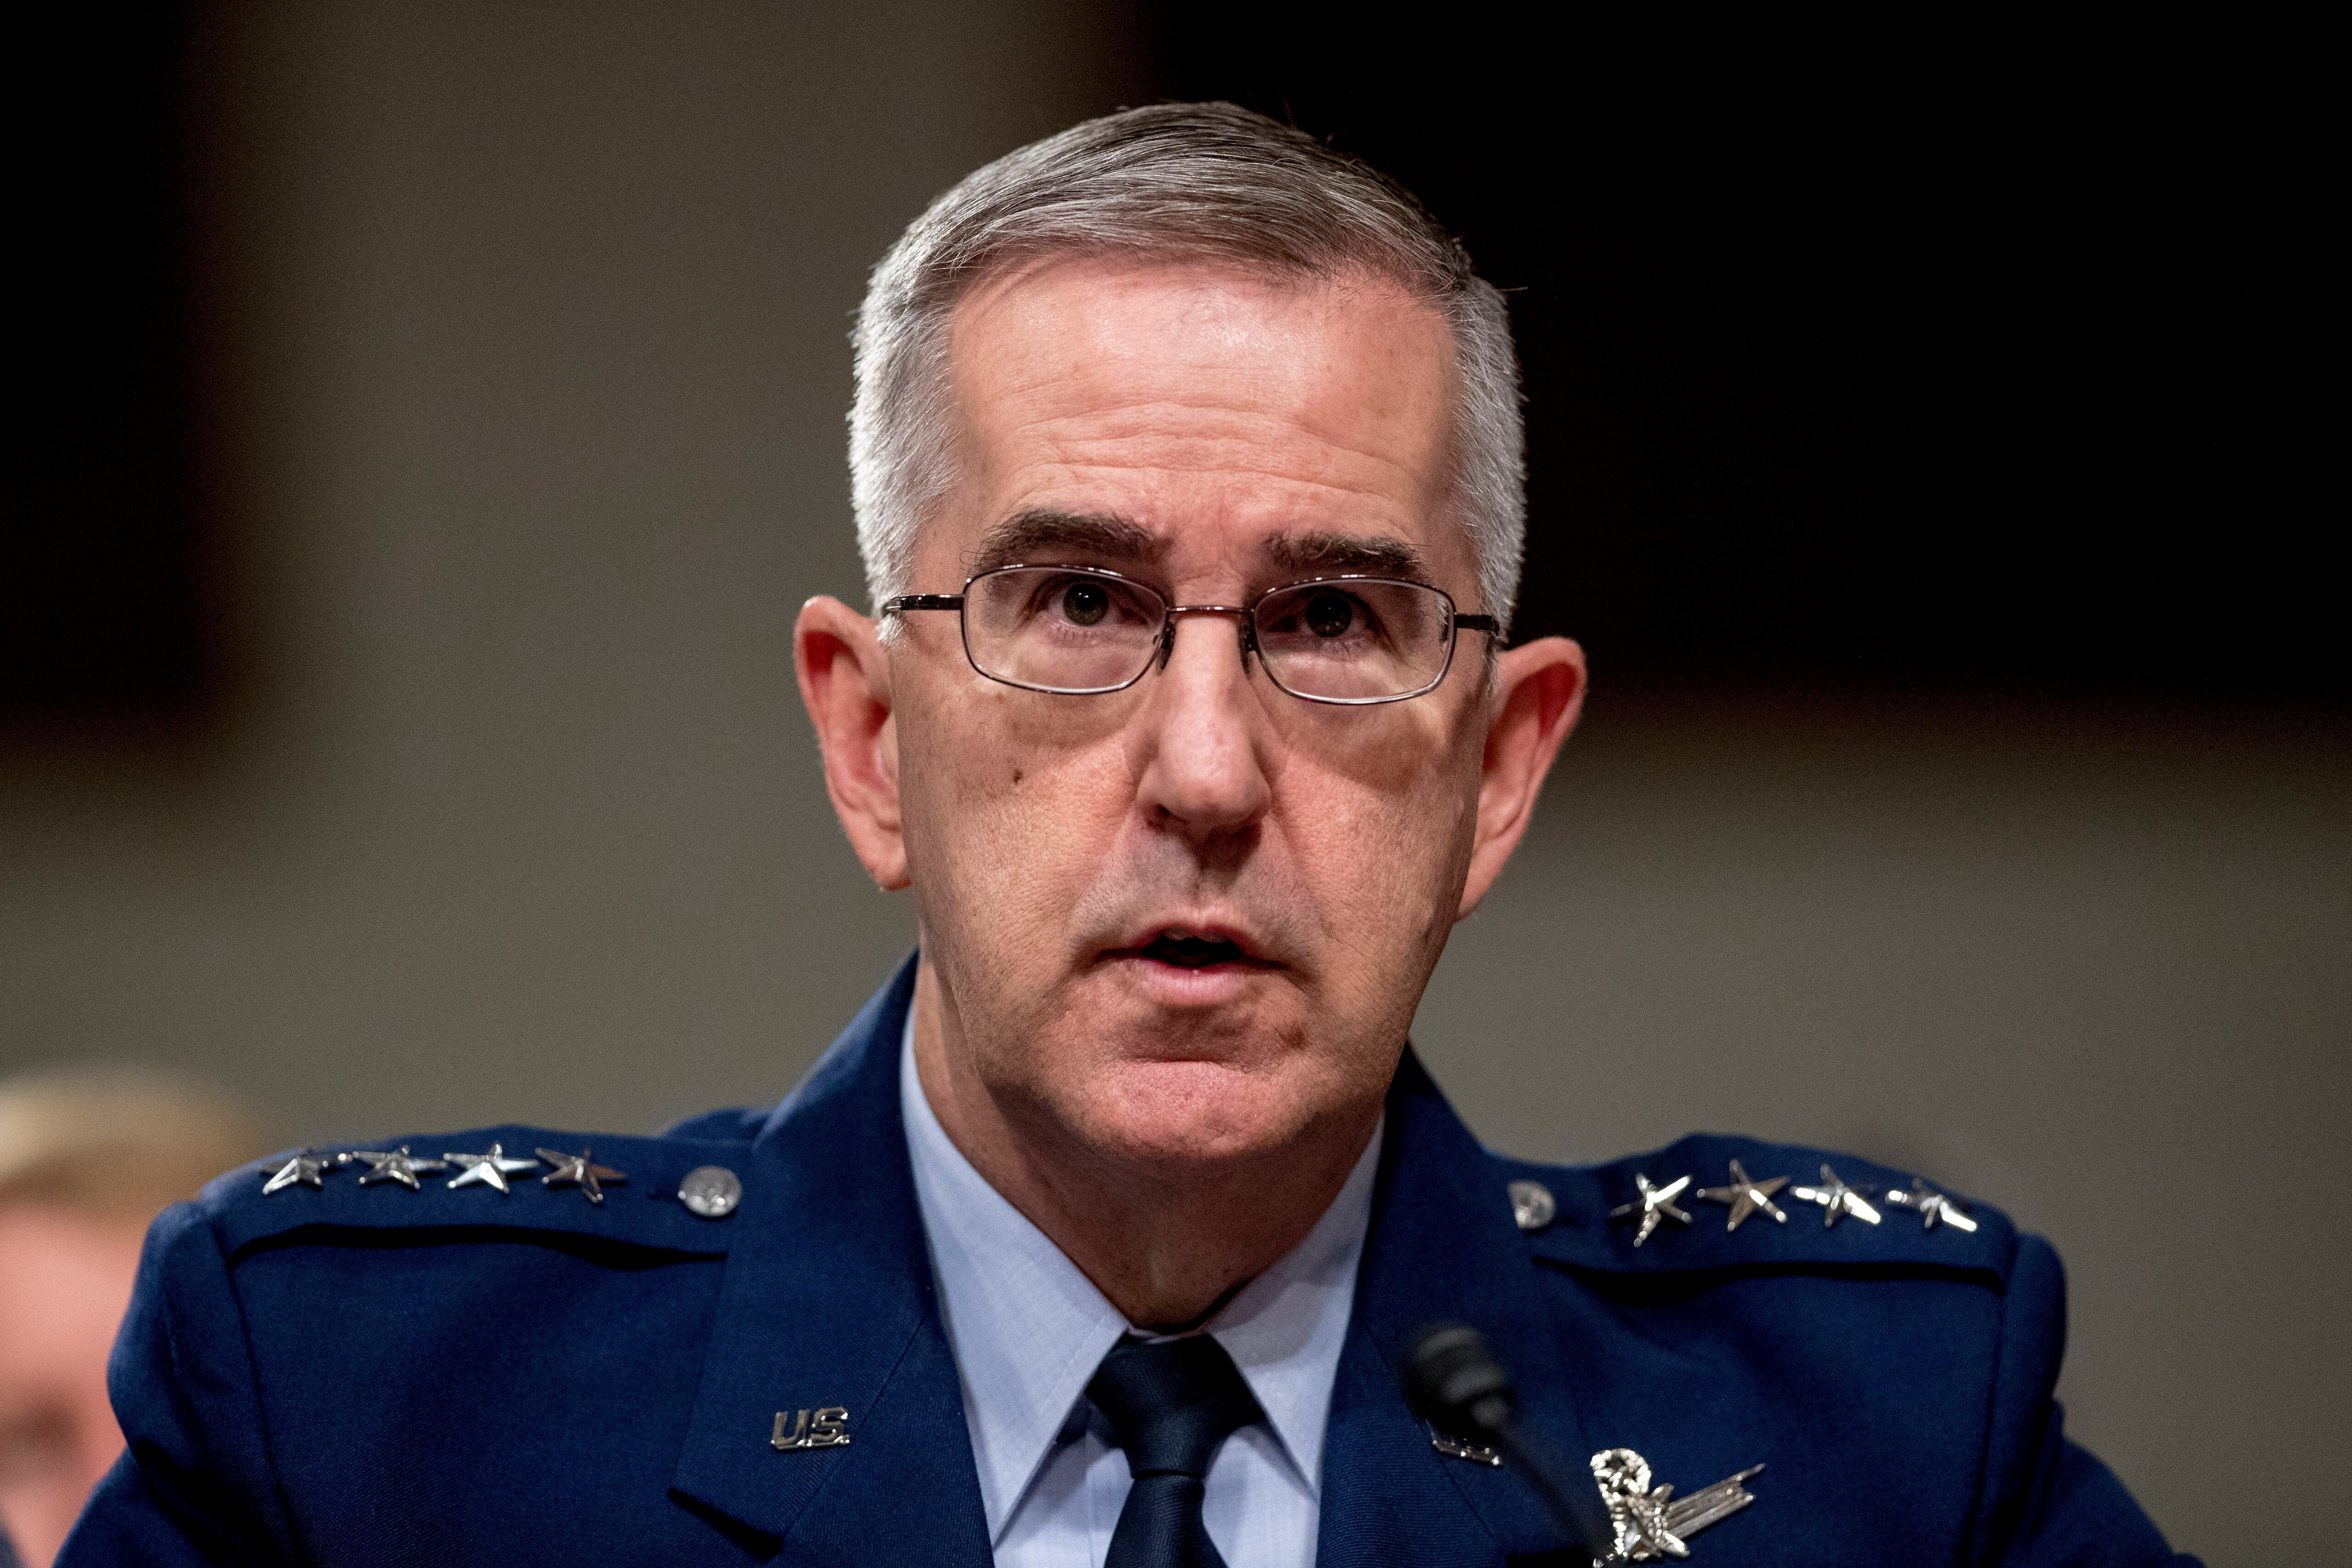 Senior Military Officer Accuses Air Force General Of Sexual Misconduct